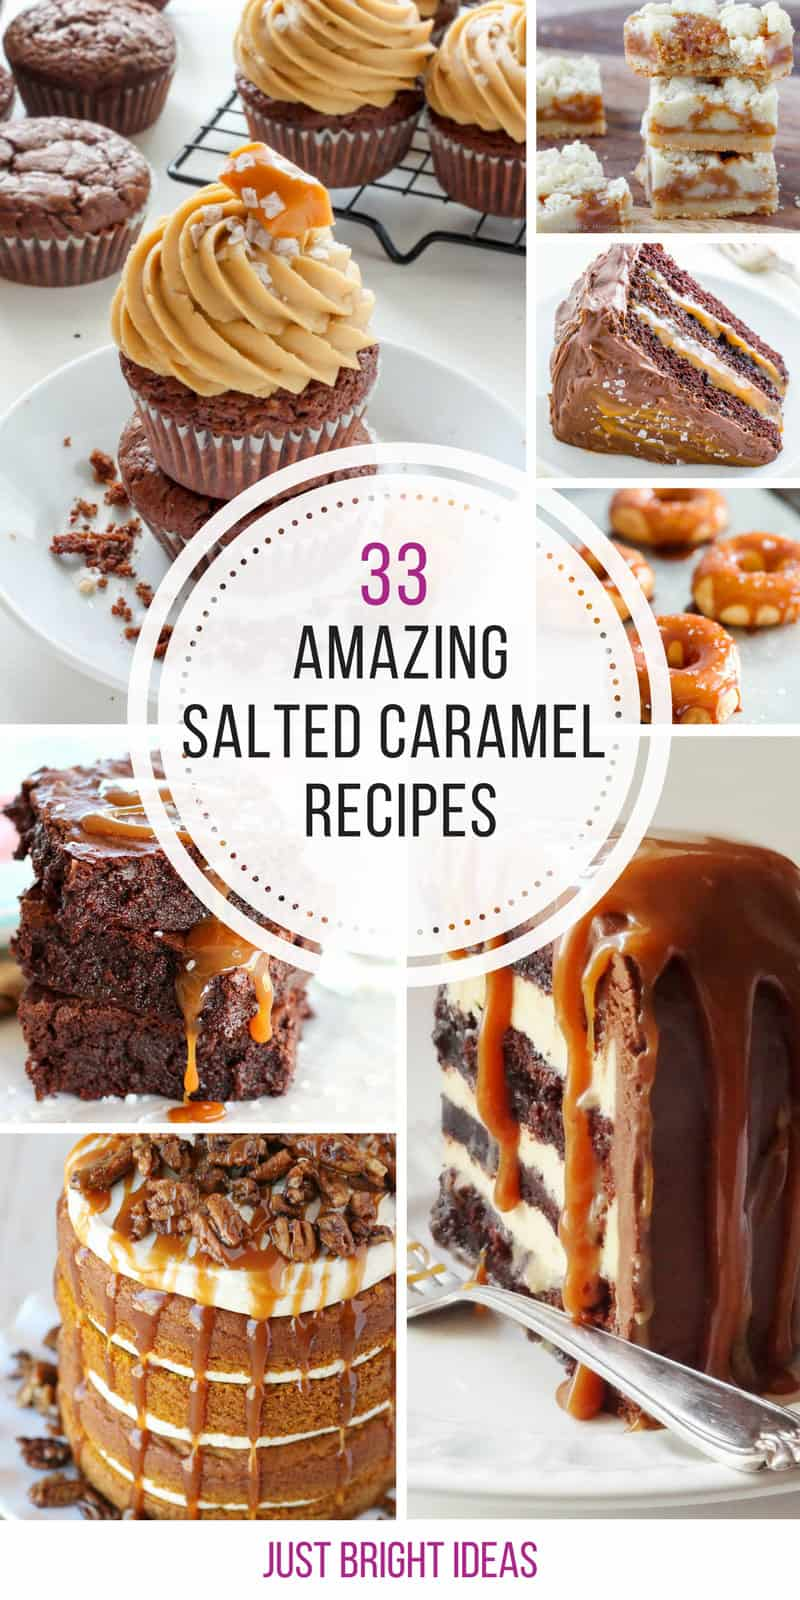 Well there goes the diet for another day! Thanks for sharing these salted caramel desserts!